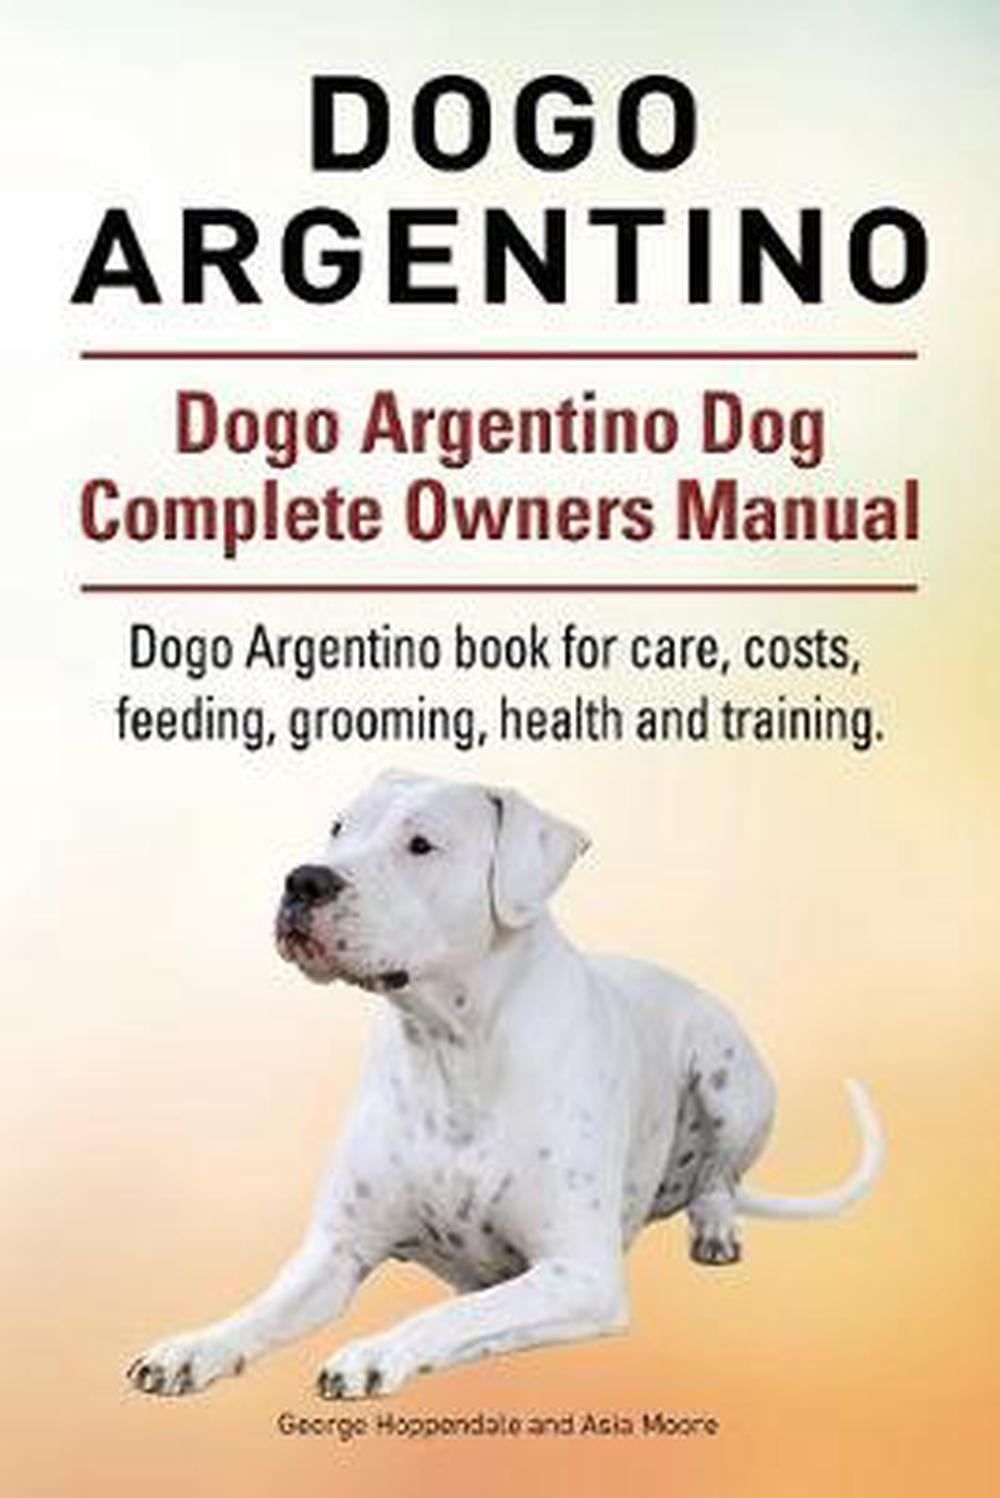 Dogo Argentino. Dogo Argentino Dog Complete Owners Manual ...